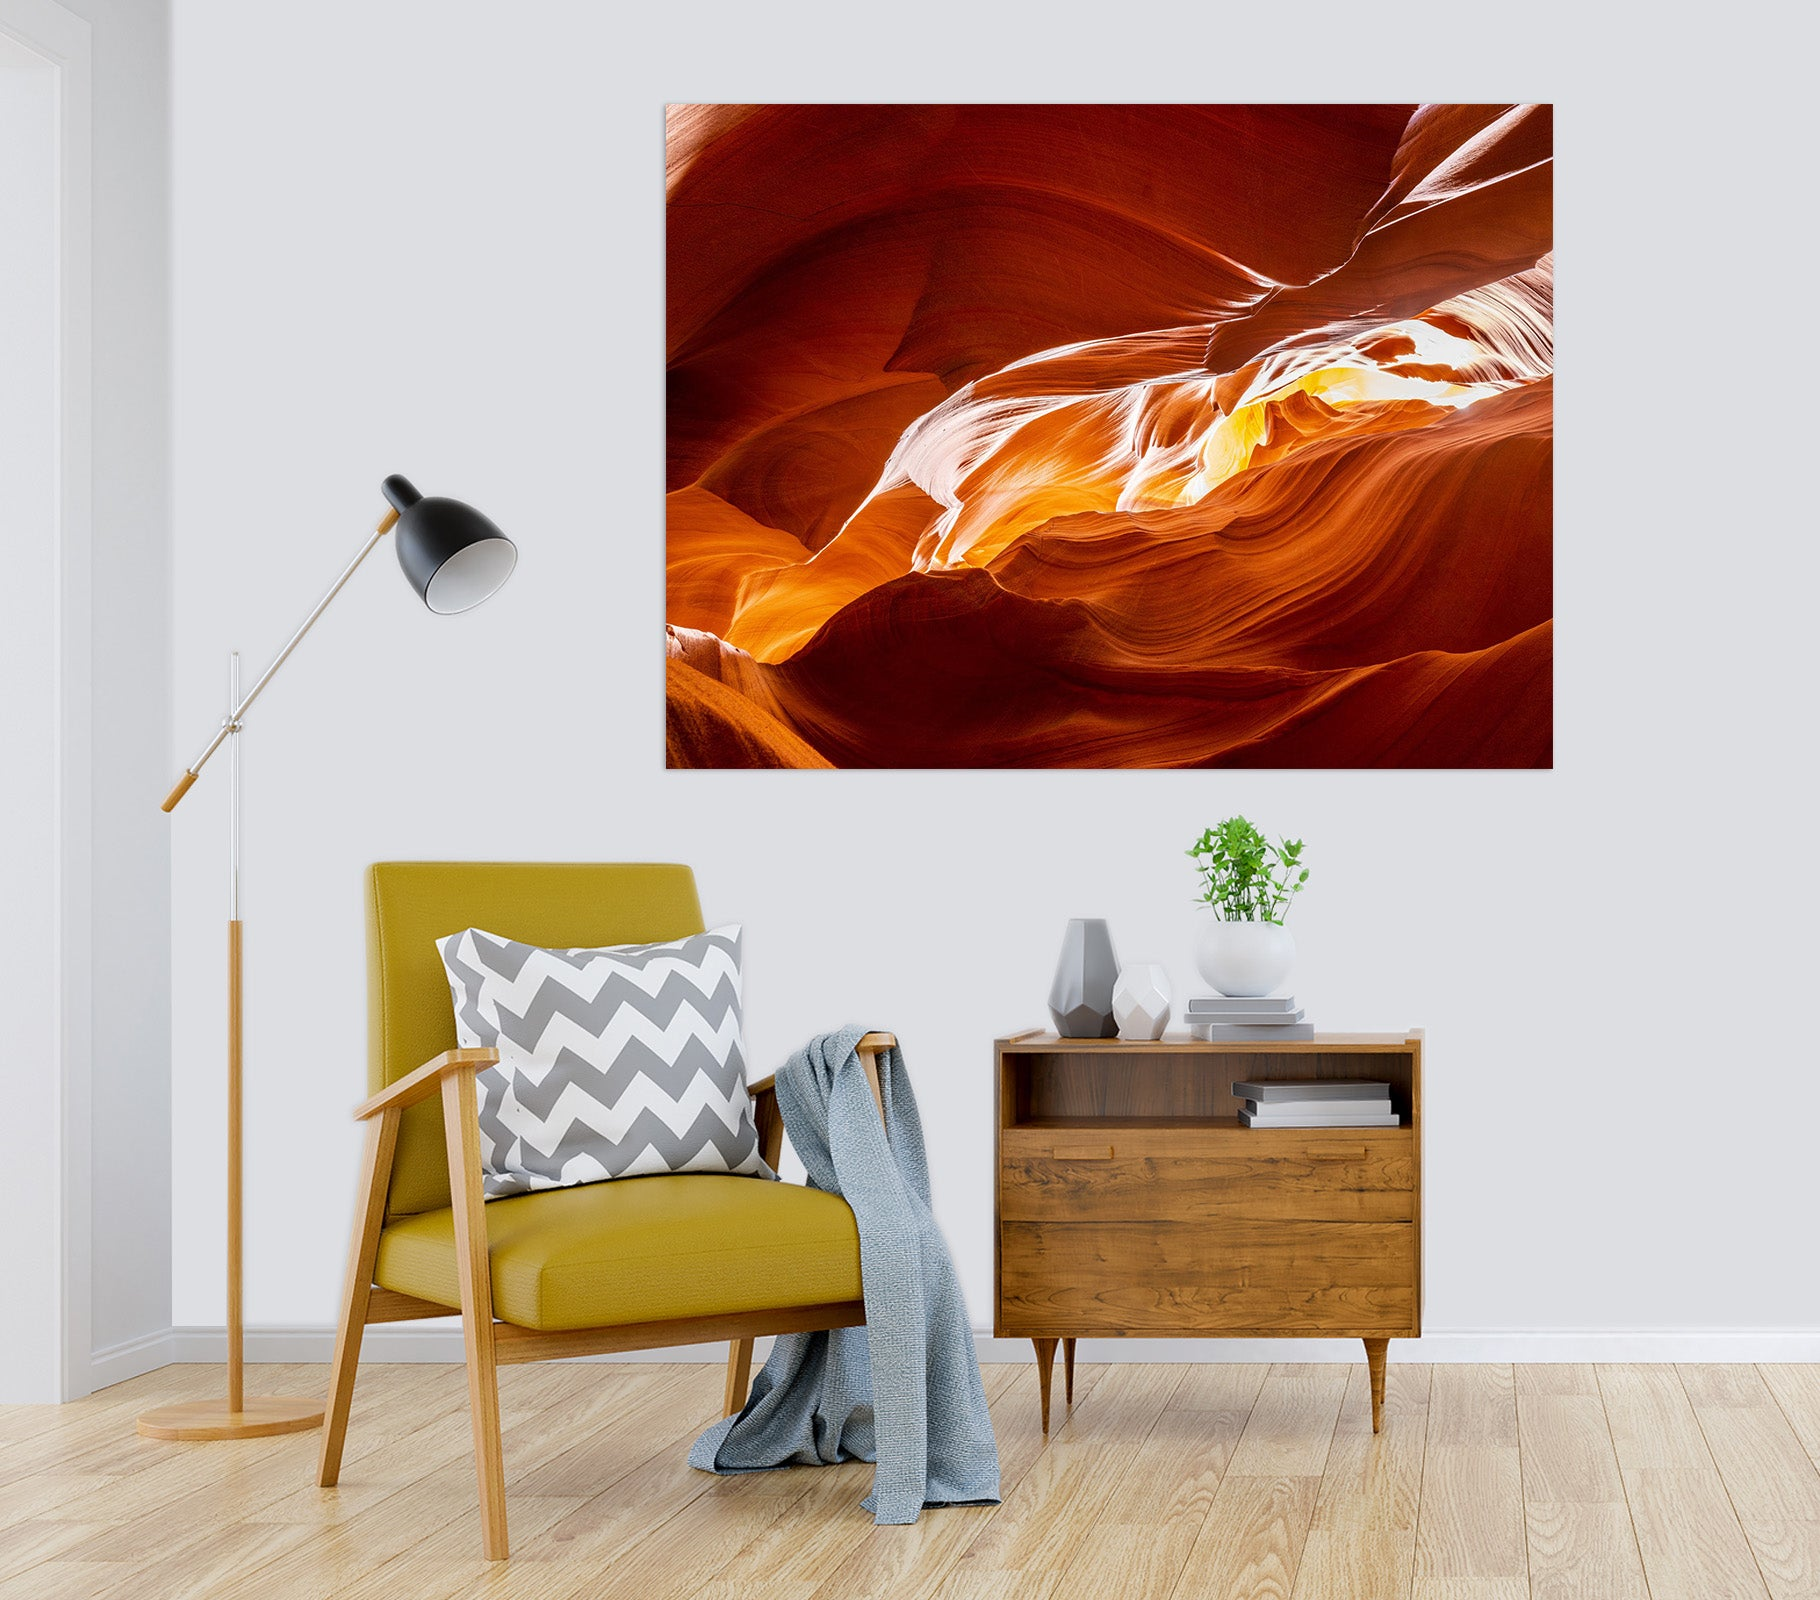 3D Red Magma 215 Marco Carmassi Wall Sticker